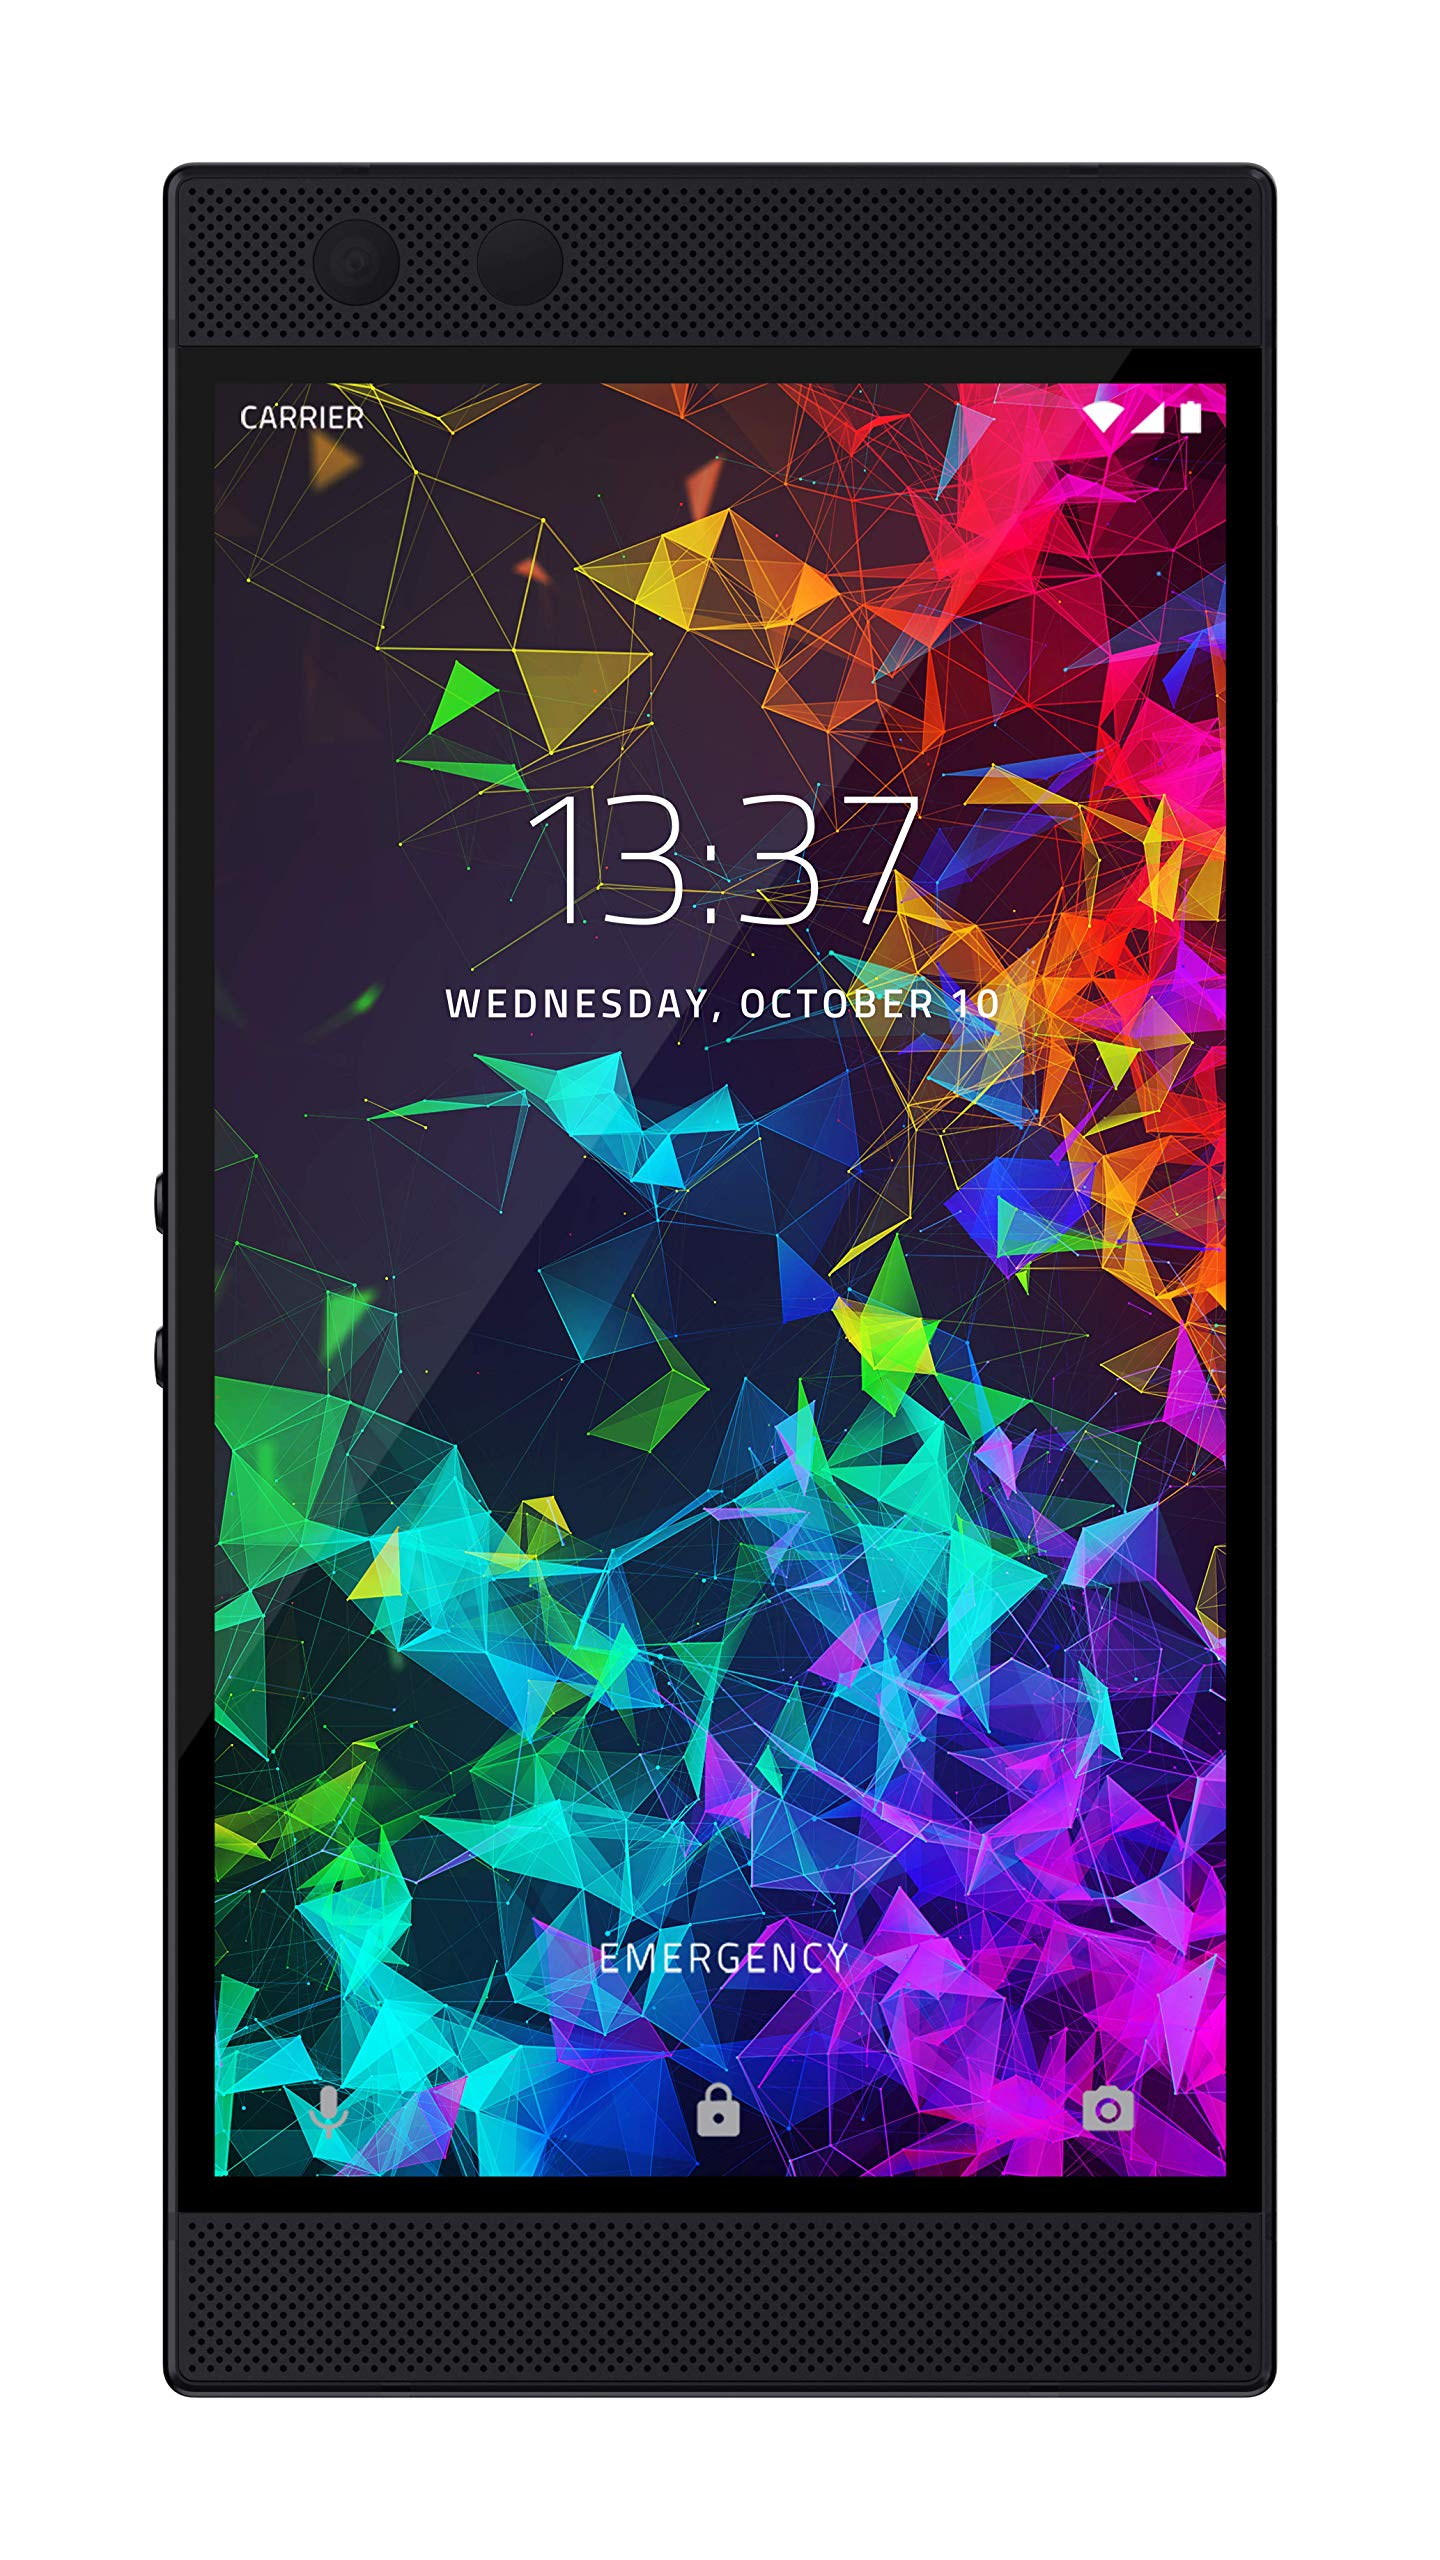 Razer Phone 2 (New): Unlocked Gaming Smartphone - 120Hz QHD Display - Snapdragon 845 - Wireless Charging - Chroma - 8GB RAM - 64GB - Mirror Black Finish